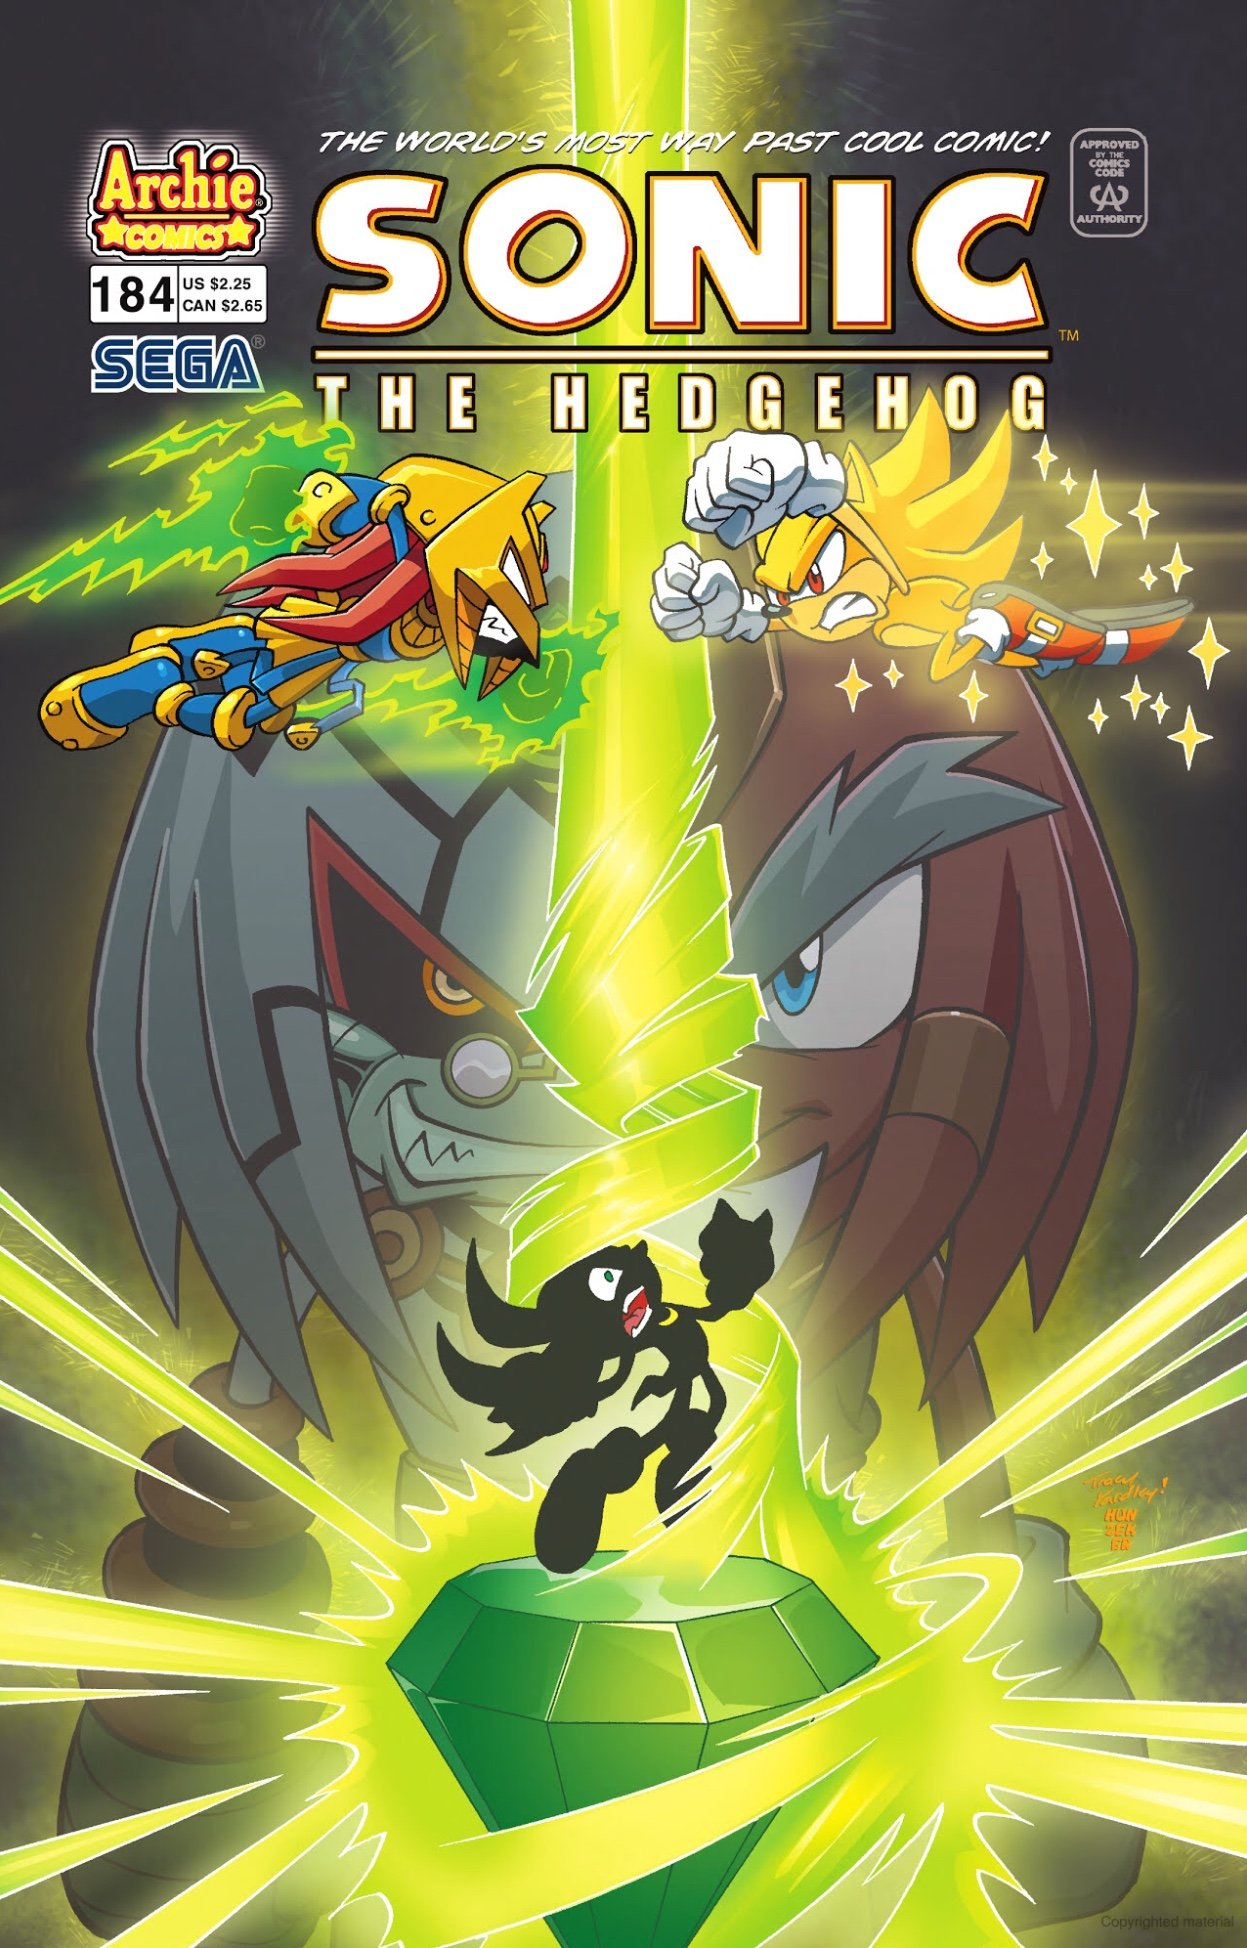 Sonic the Hedgehog 184 (March 2008)